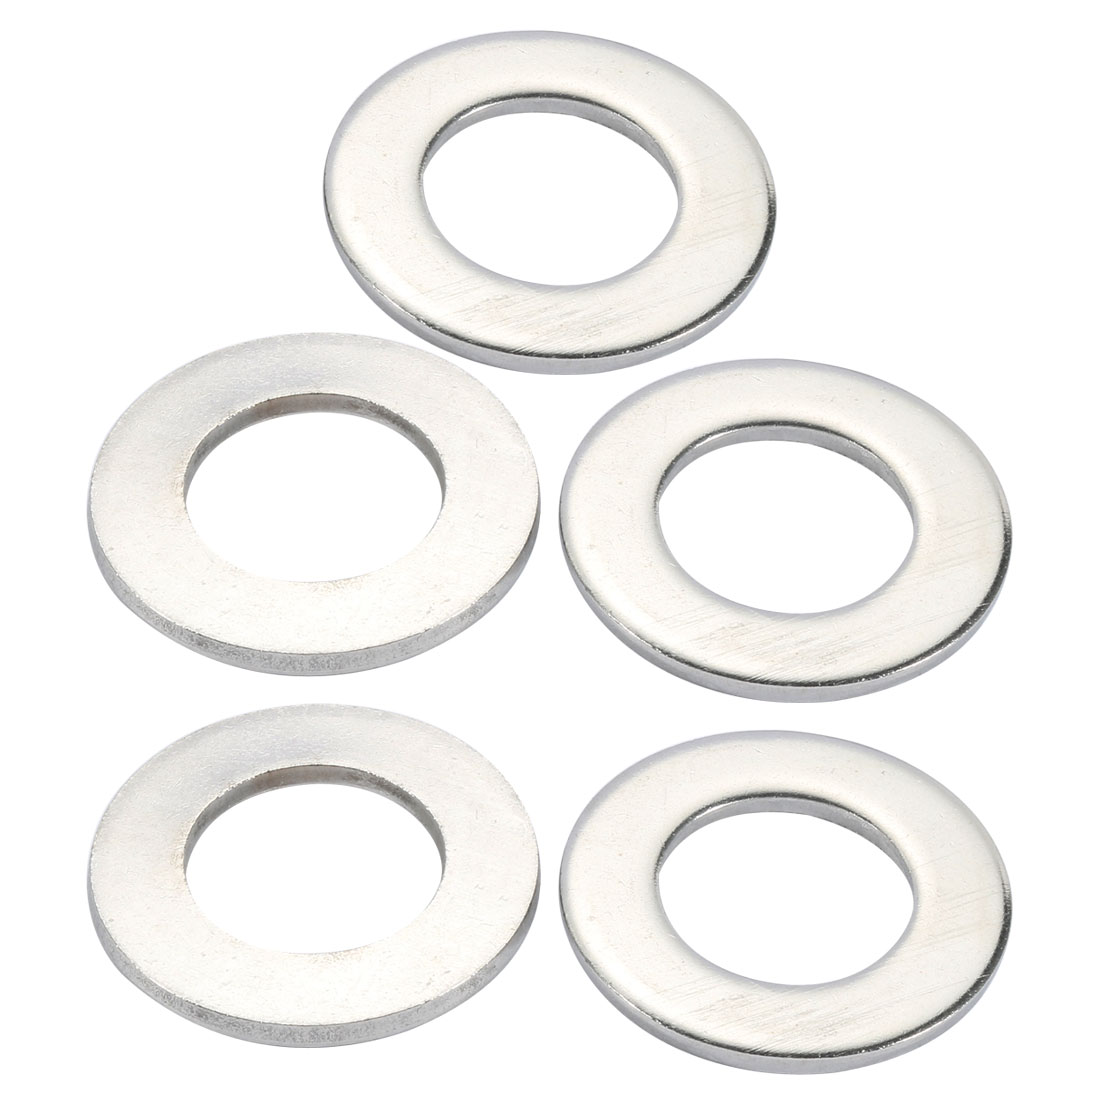 M30x56mmx4mm DIN125 316 Stainless Steel Flat Washer Silver Tone 5pcs